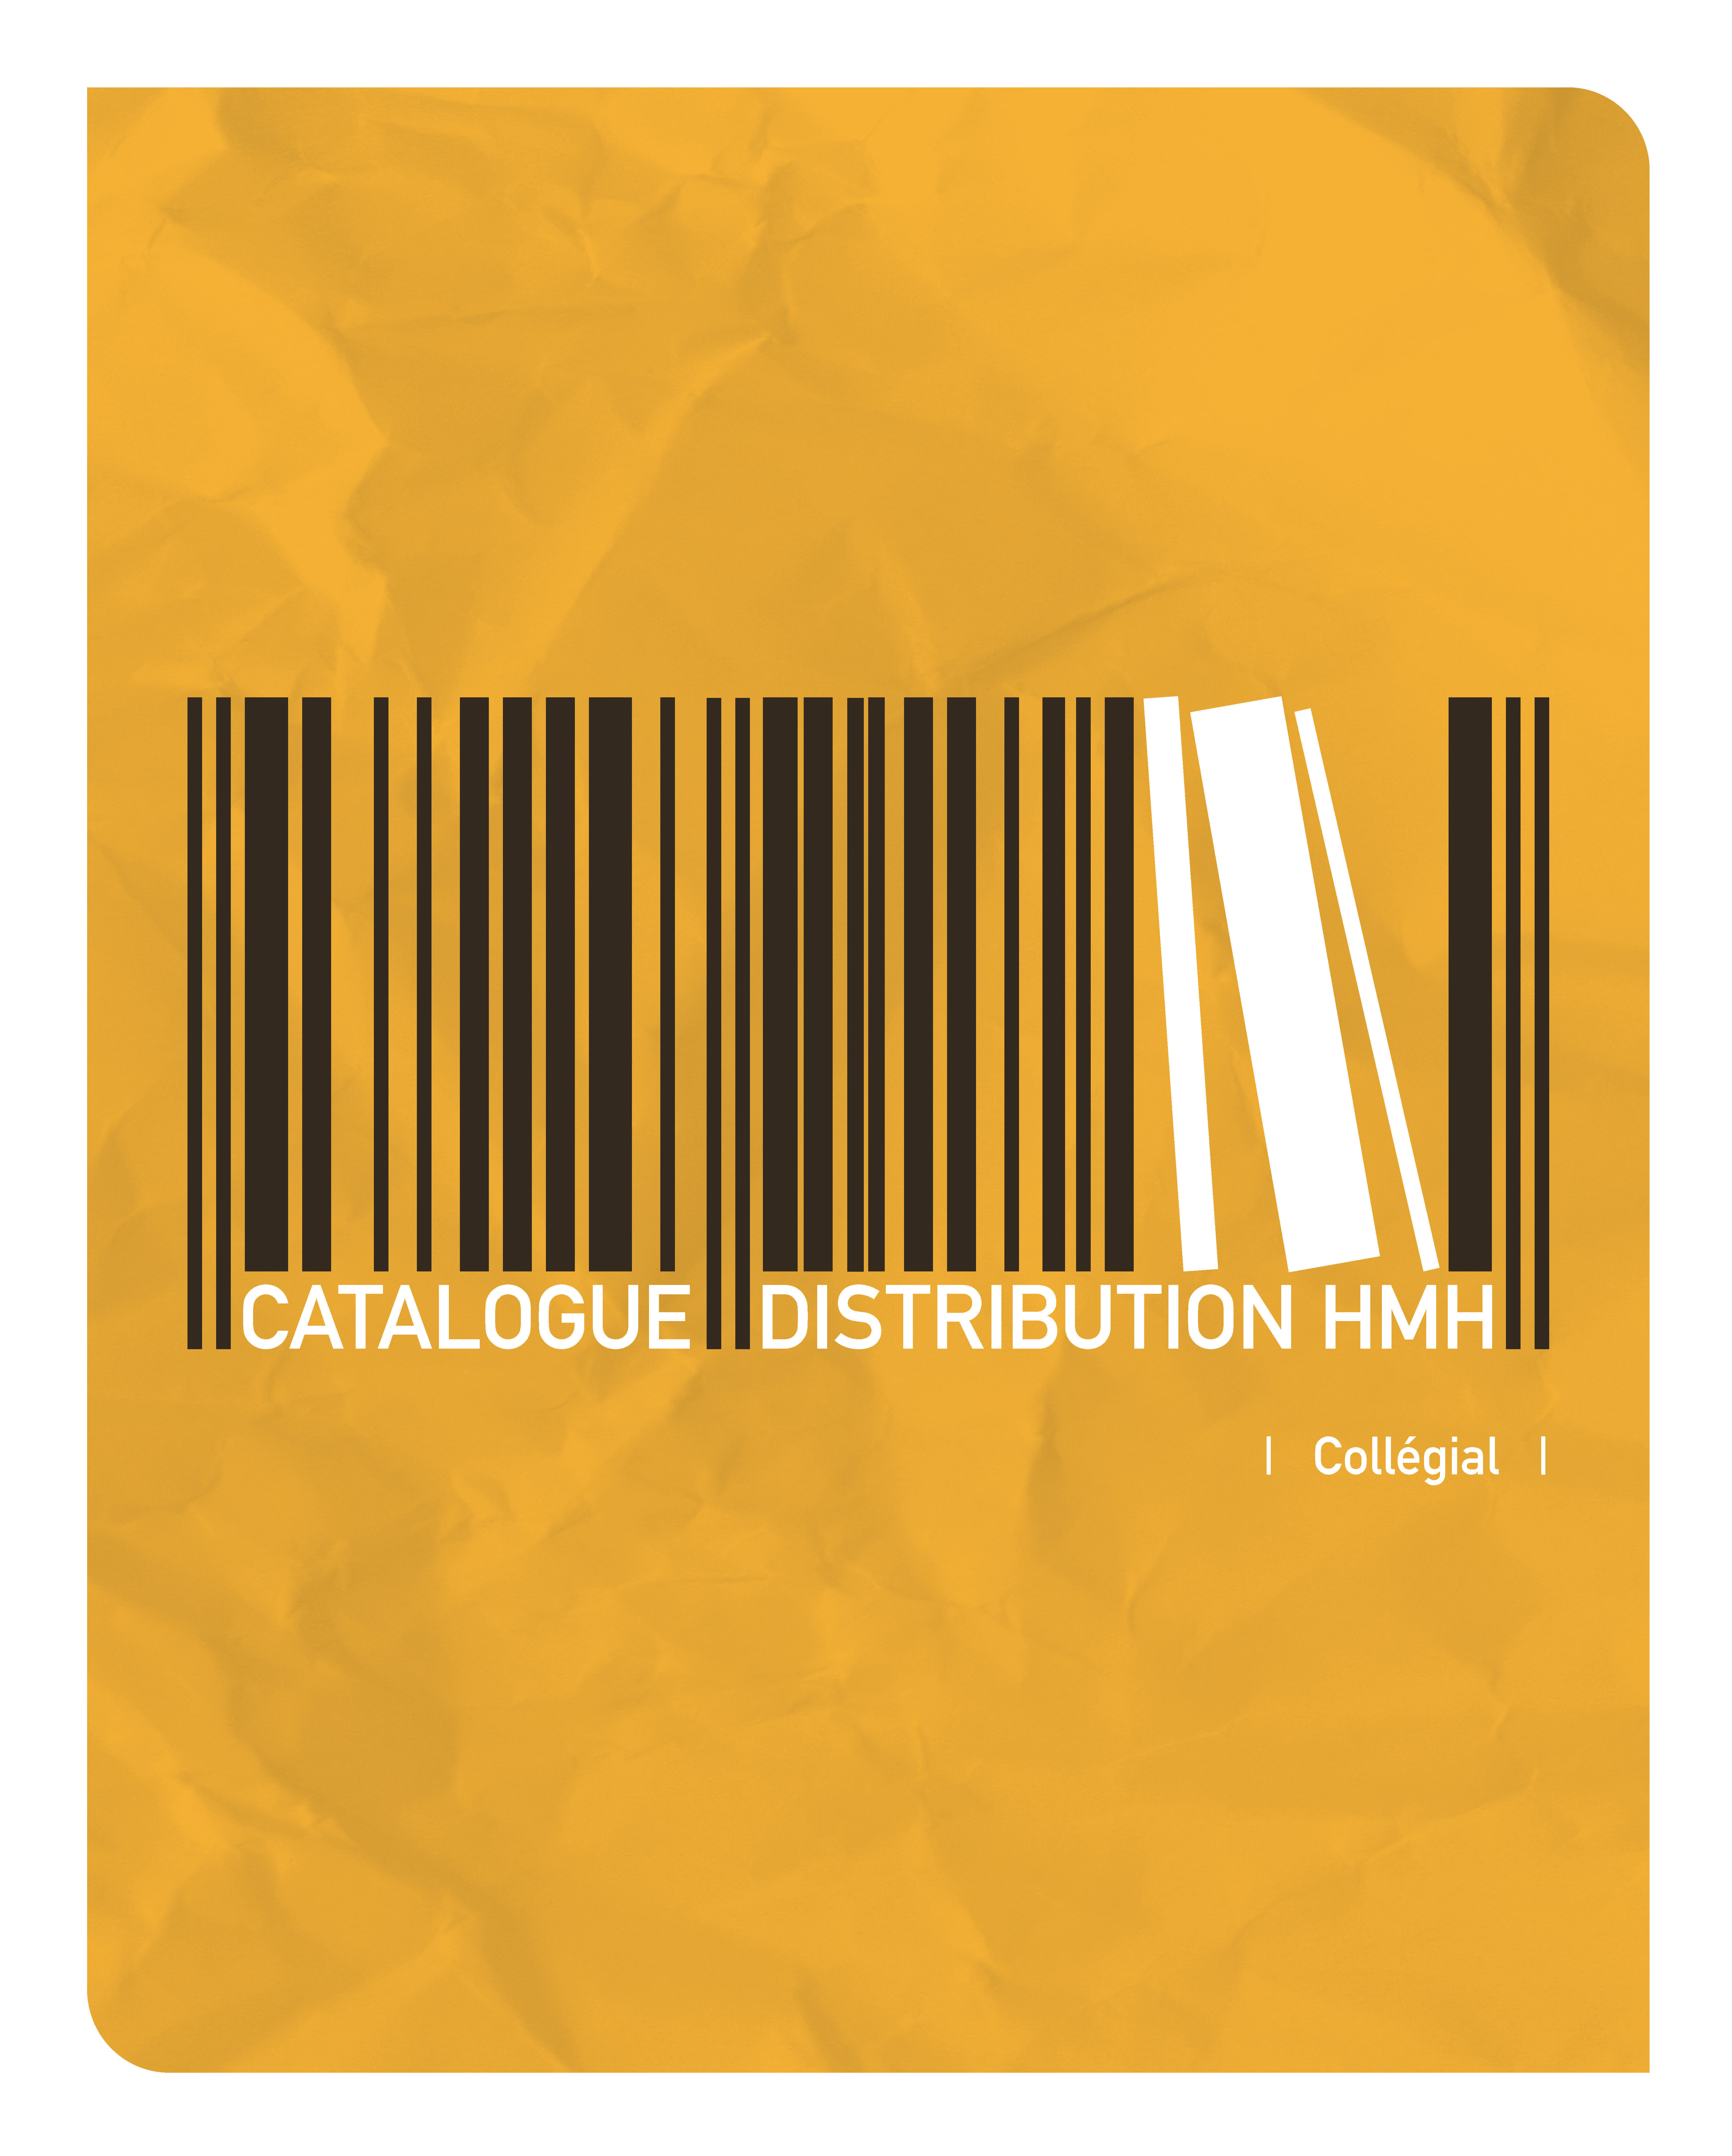 DISTRIBUTION HMH - COLLEGIAL - CATALOGUE 2014